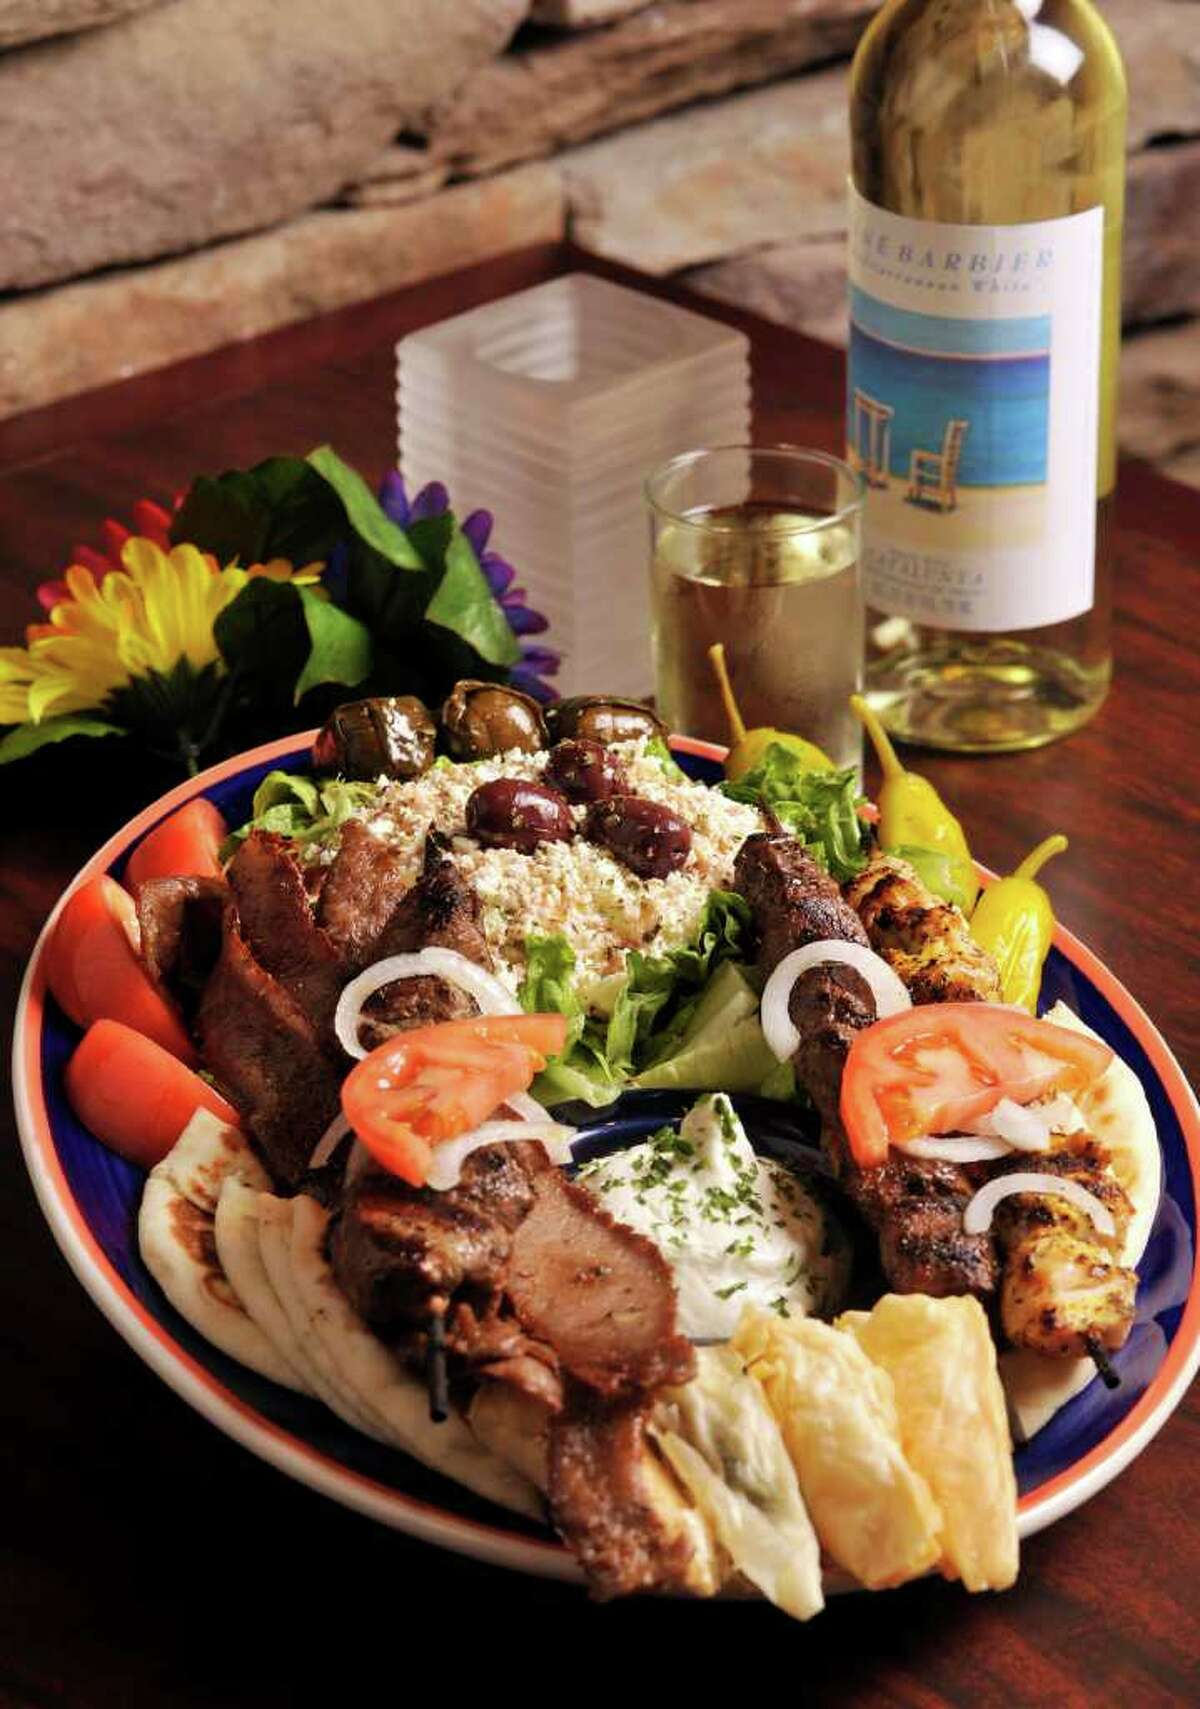 The Papouli's Feast offers a sampling of tastes - sirloin steak, chicken and lamb skewers; tossed Greek salad; dolmas; spanakopita; tyropita; and tzatziki sauce and pitas.